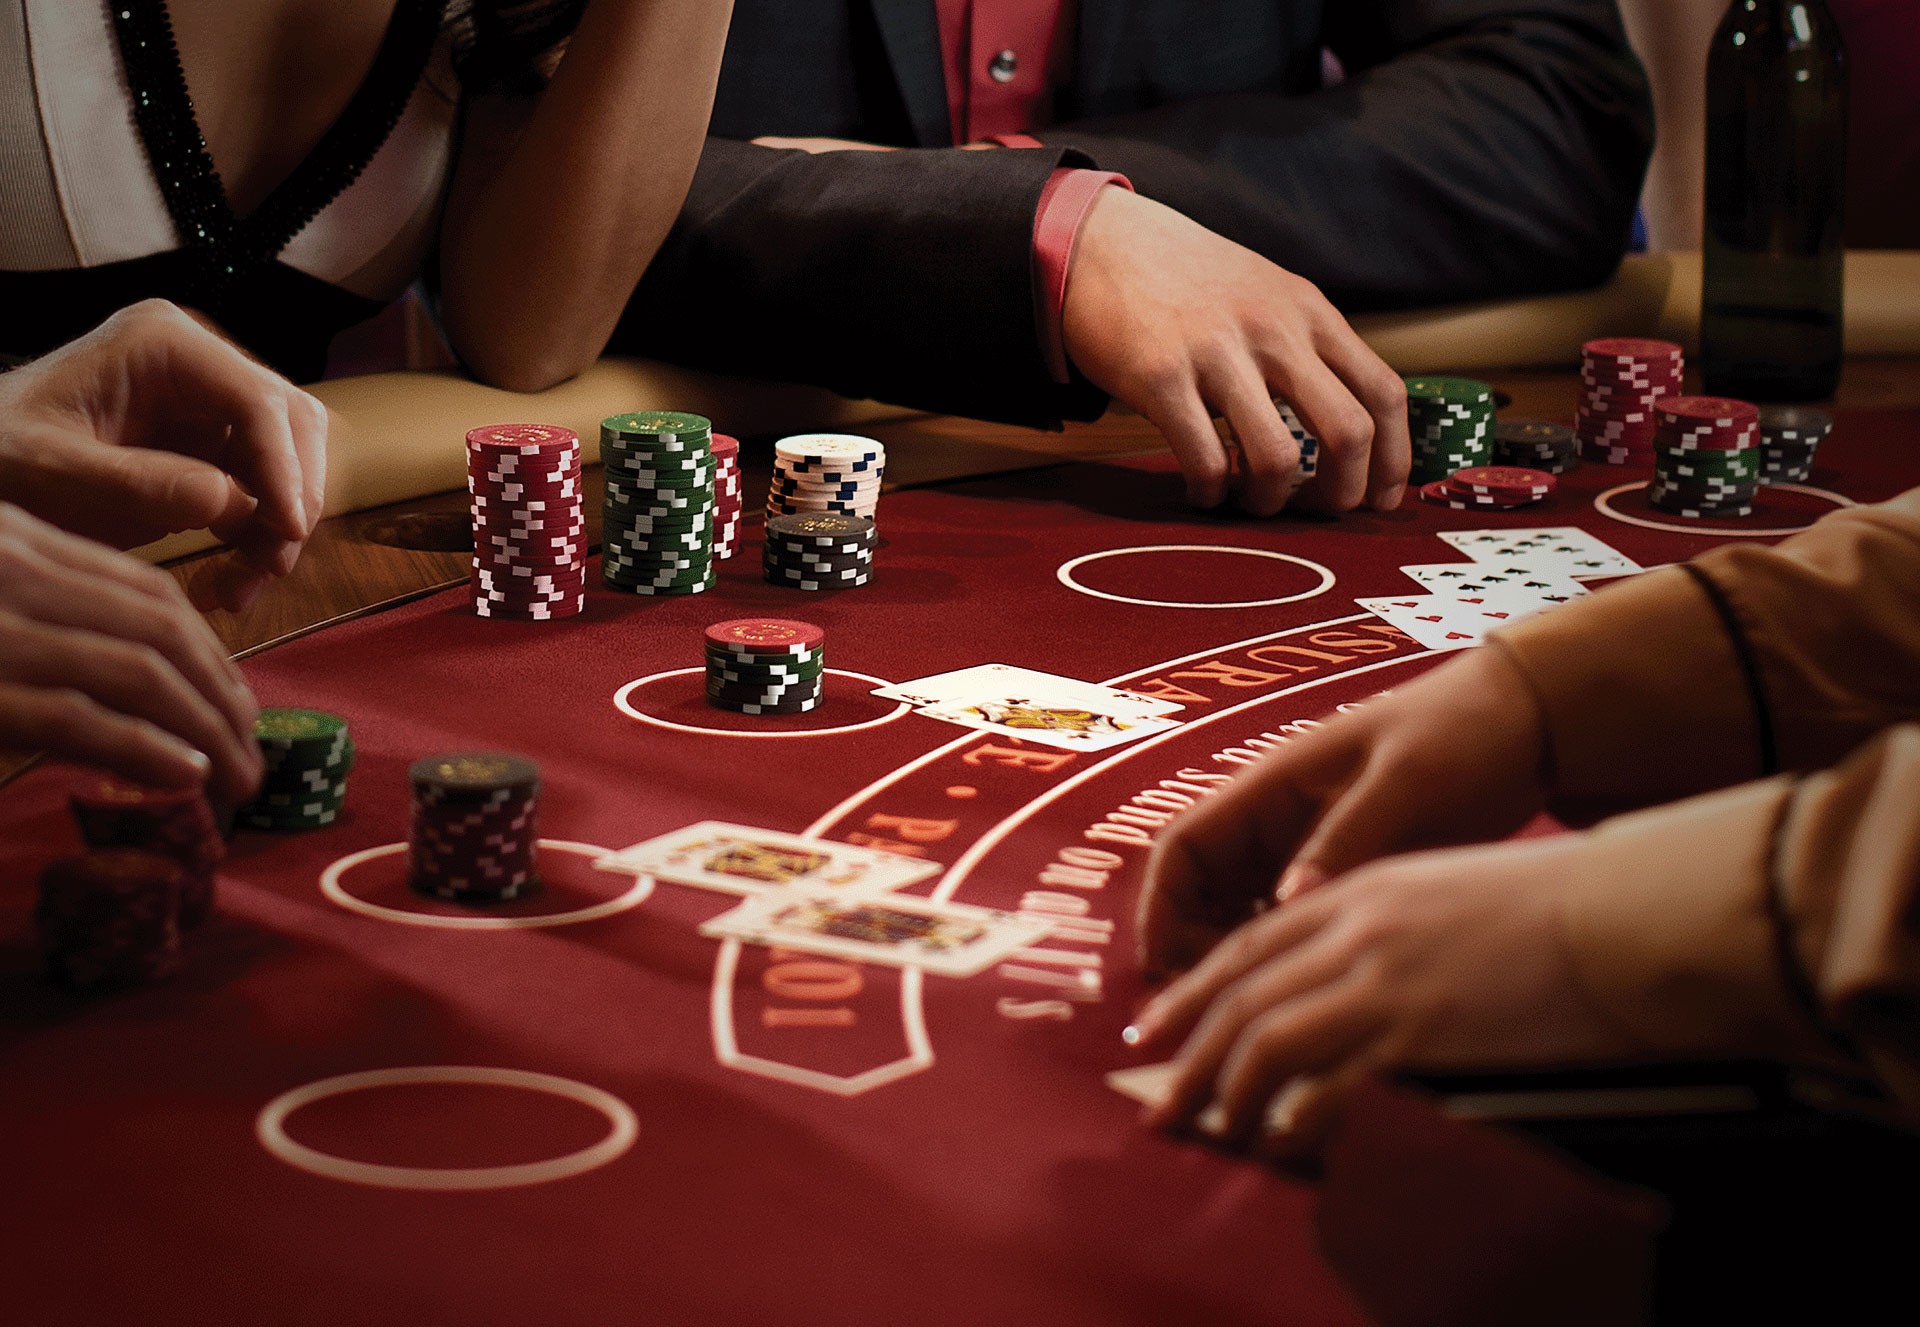 What makes the key differences between online and offline casinos in the gambling market today